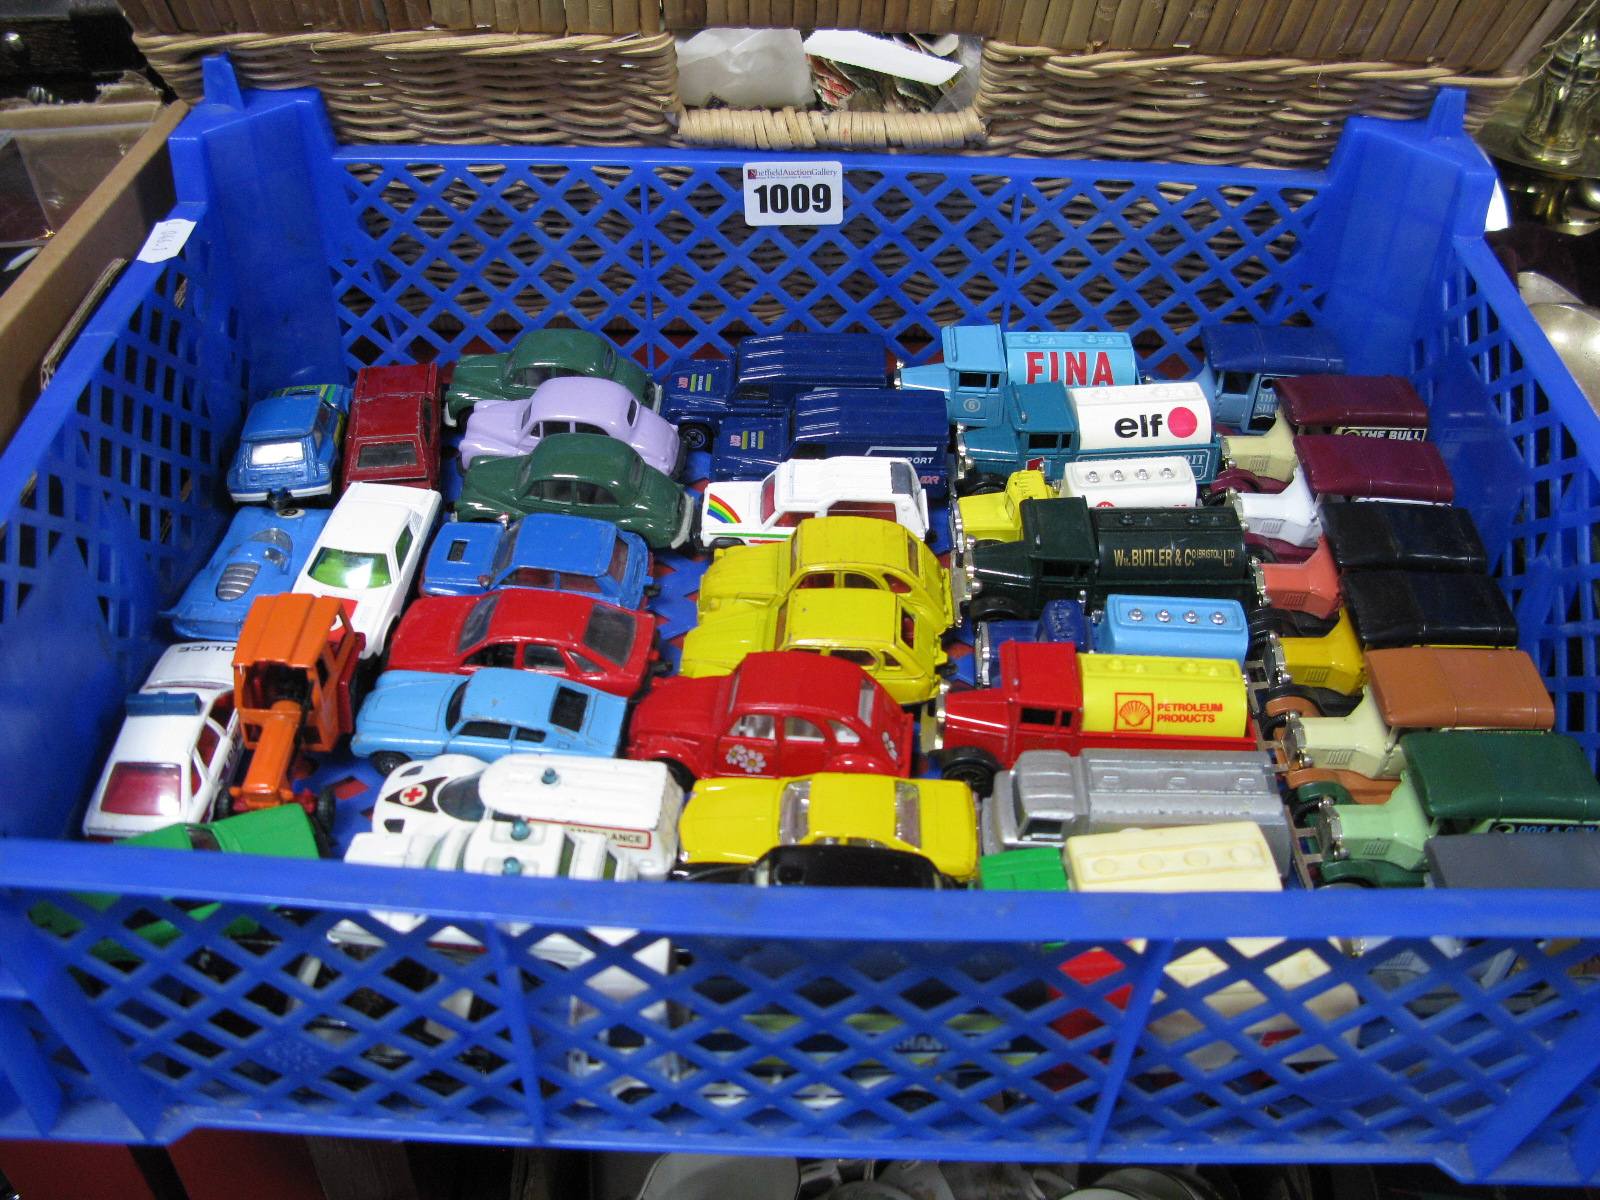 Lot 1009 - Over Forty Diecast and Plastic Corgi Juniors - including cars, commercial and vintage vehicles:- One